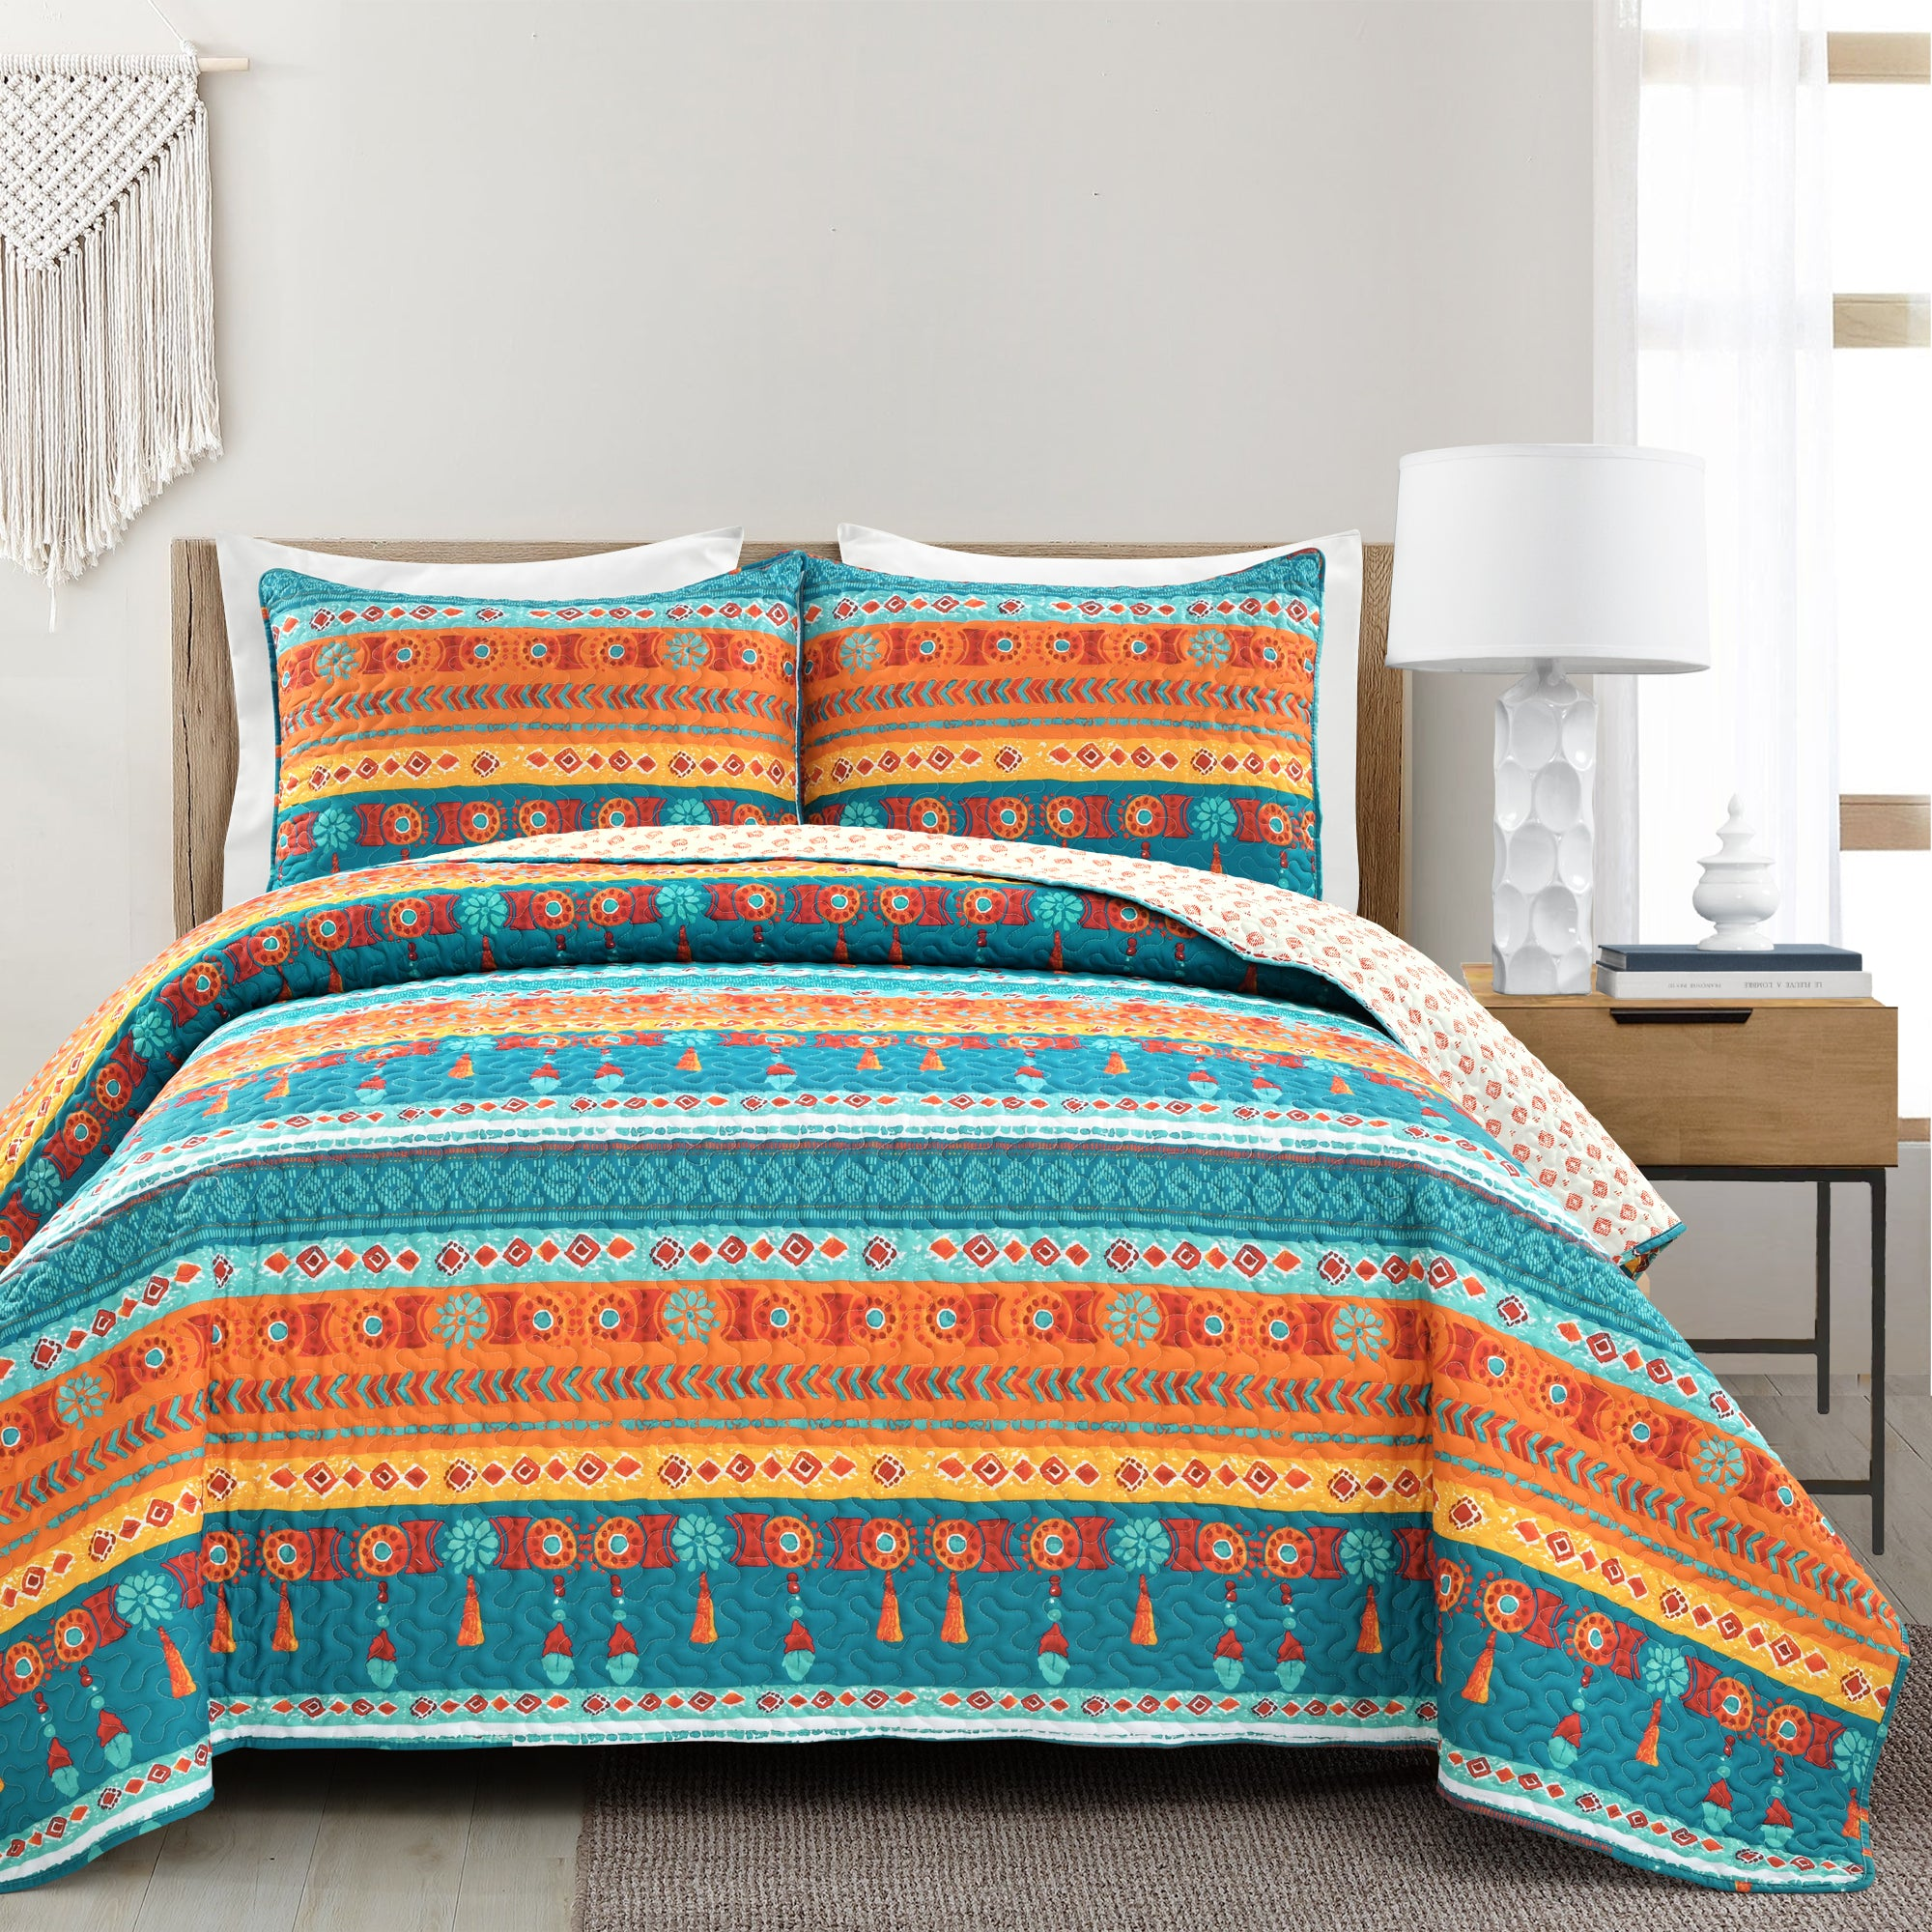 Boho Watercolor Border Quilt 3 Piece Set